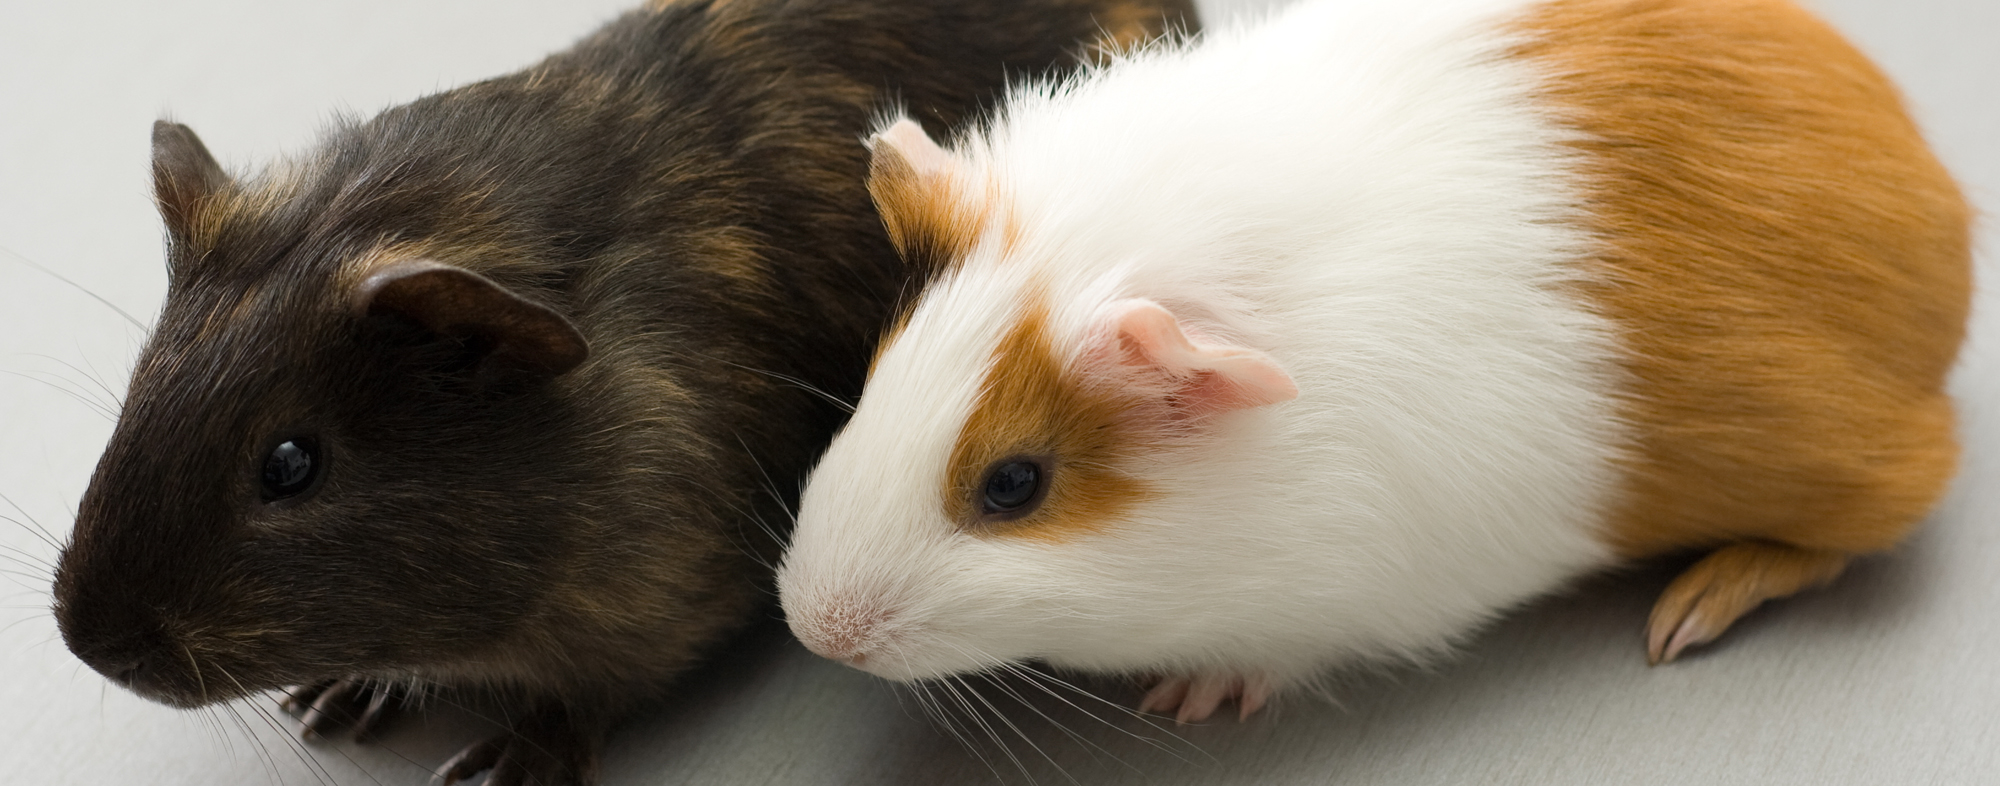 Pair of hamsters side by side, despite being nocturnal and solitary